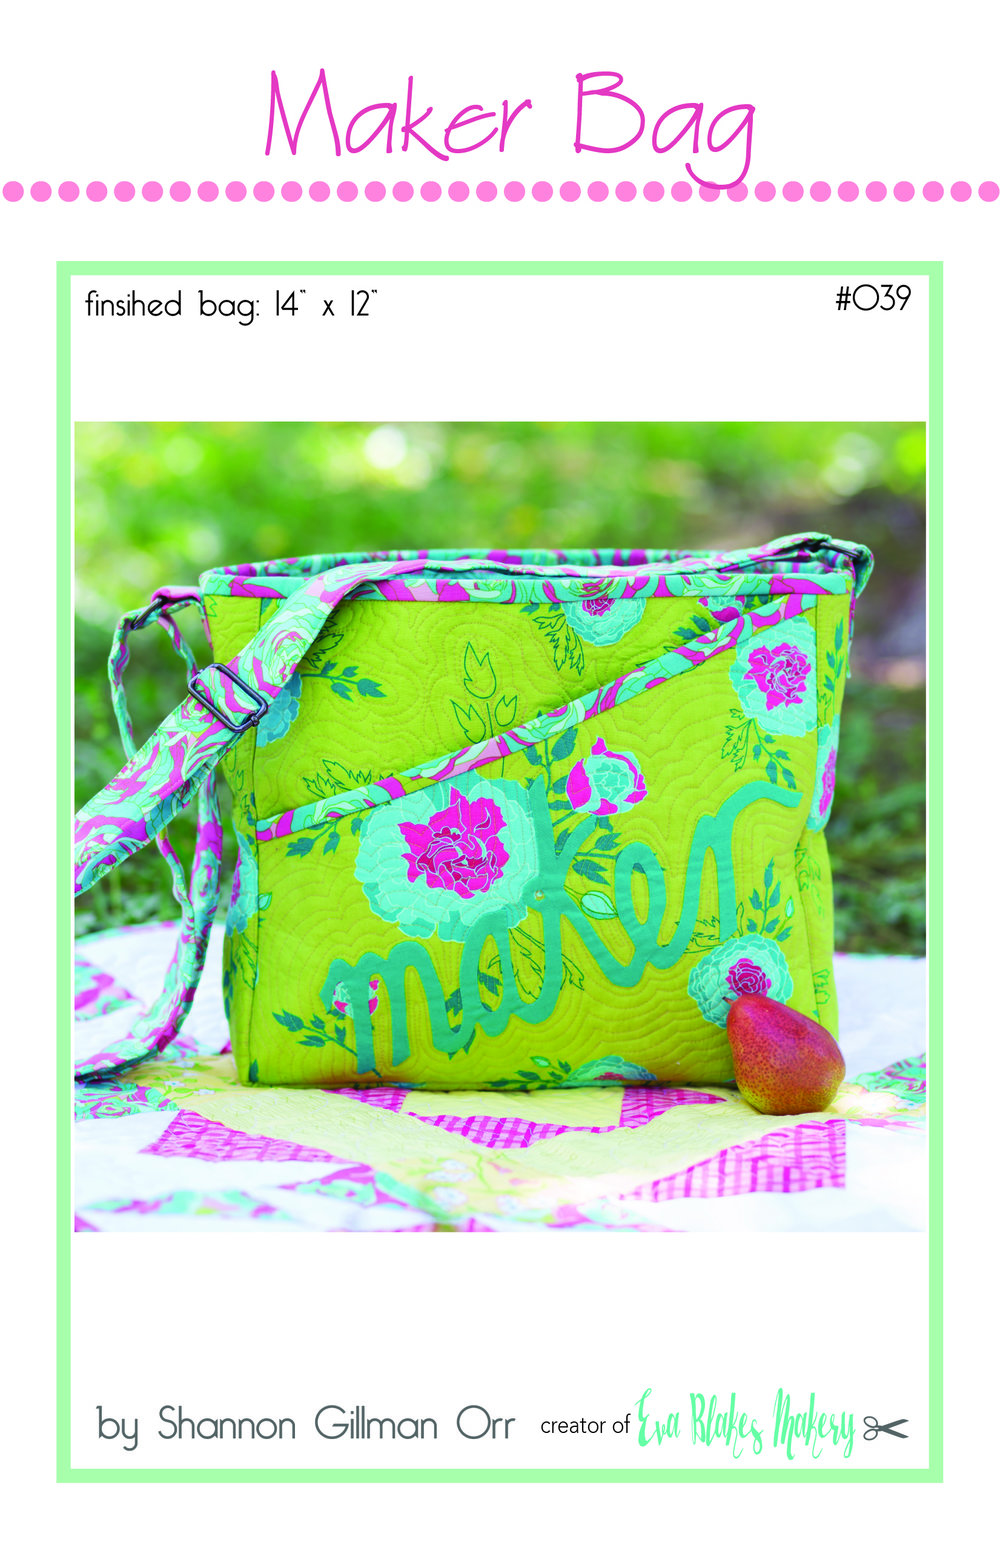 Maker Bag Pattern_Artboard 1.jpg